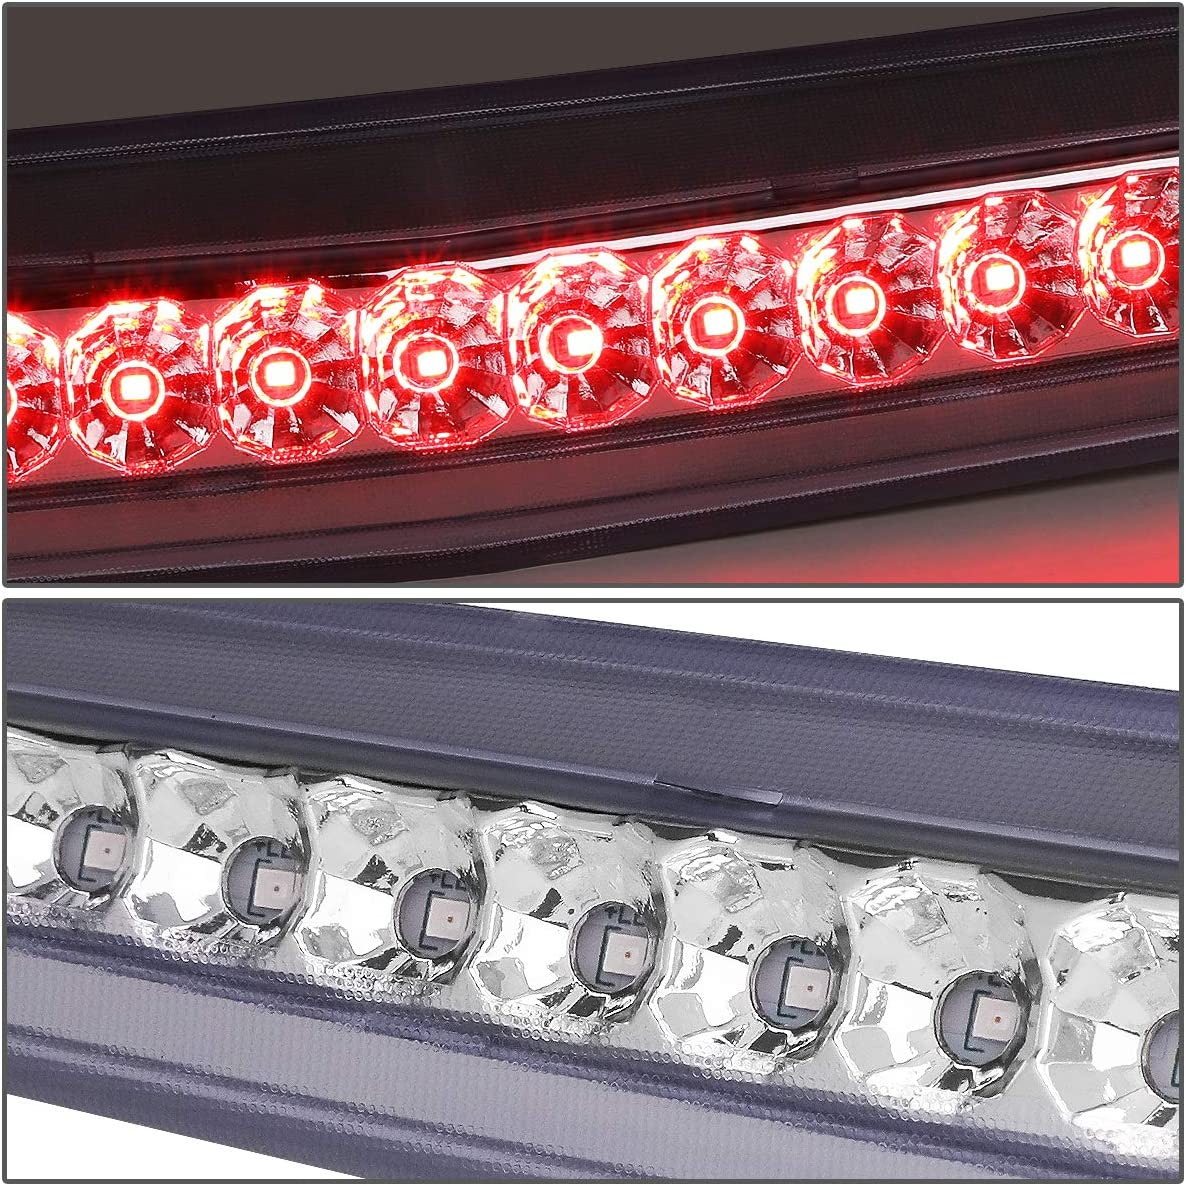 DNA MOTORING Chrome 3BL-CDTS06-LED-CH Trunk Mount LED Third 3rd Tail Brake Light Stop Lamp for 06-11 Cadillac DTS